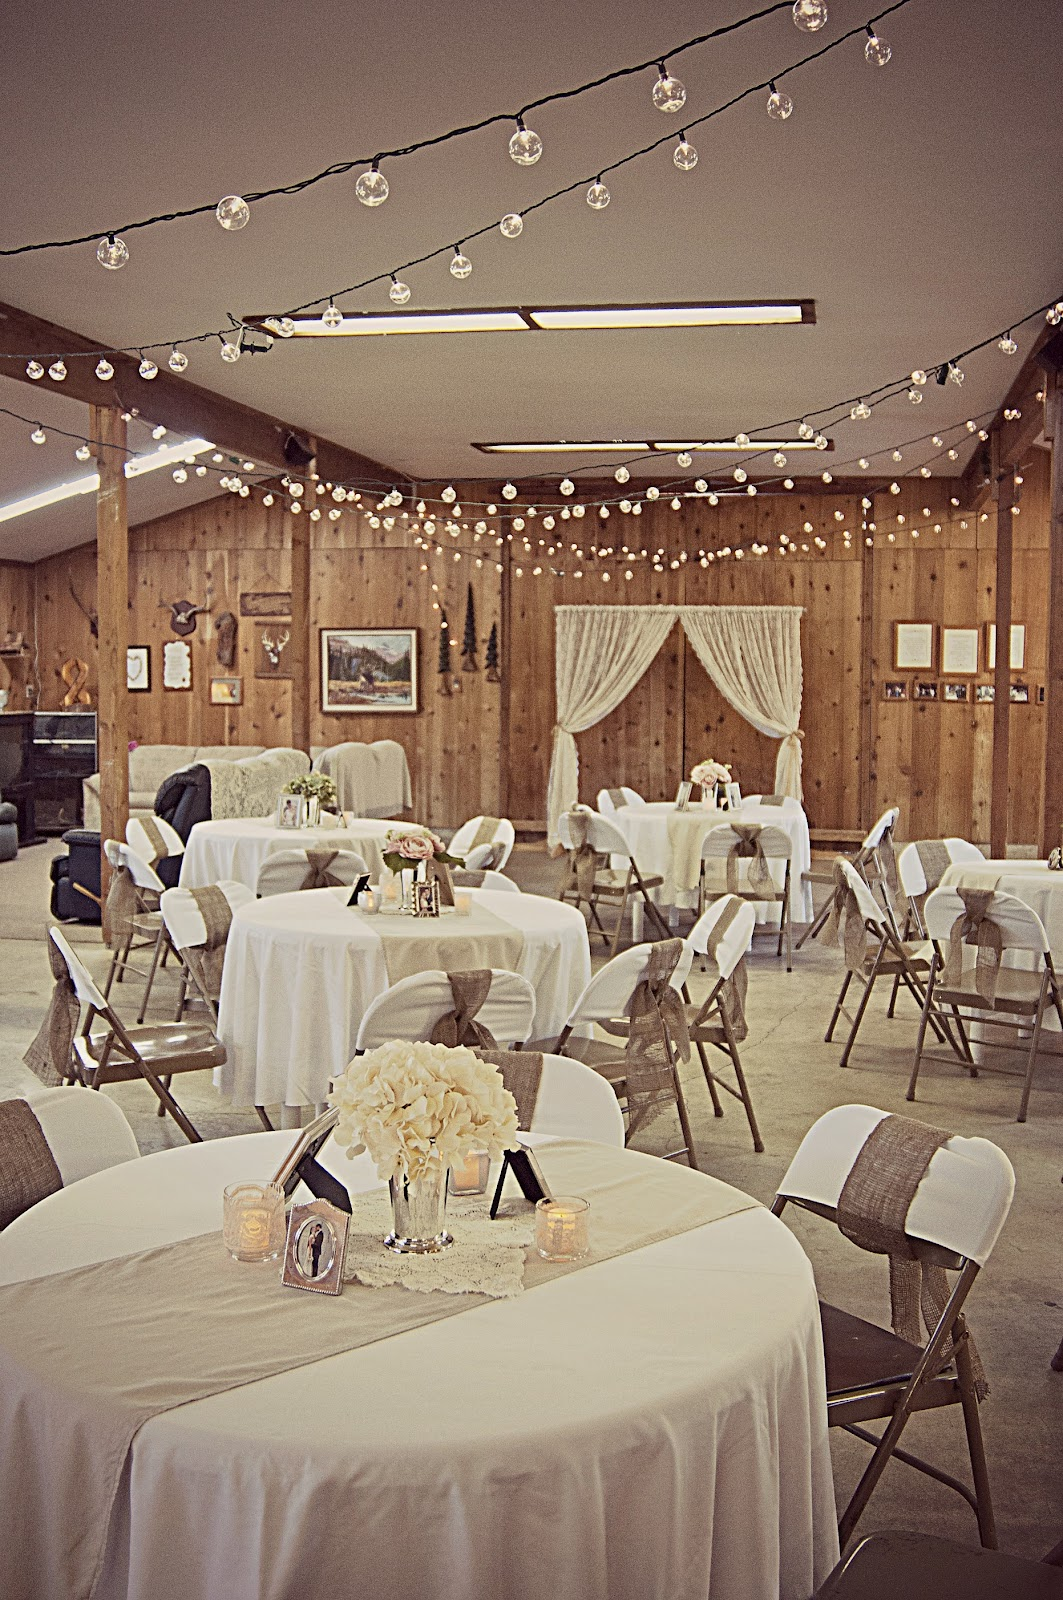 Chair Covers Wedding Near Me Designer Pty Ltd Jessica Hills Photography Seattle Barn Reception